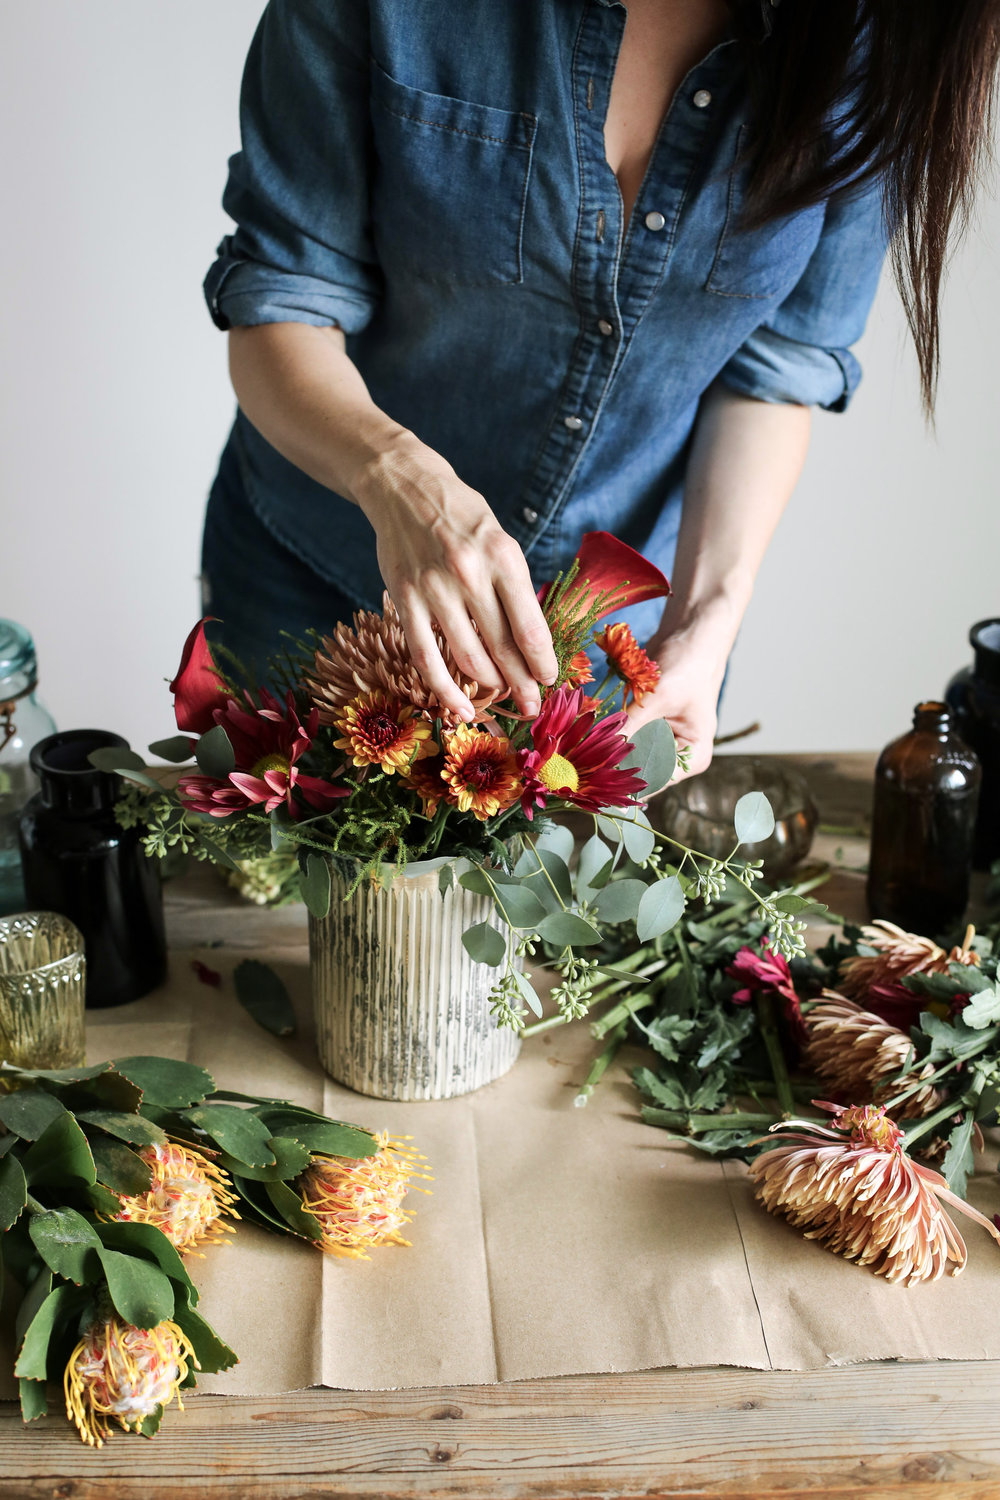 ARRANGE THE FLOWERS - grab my tips for fall floral arranging here